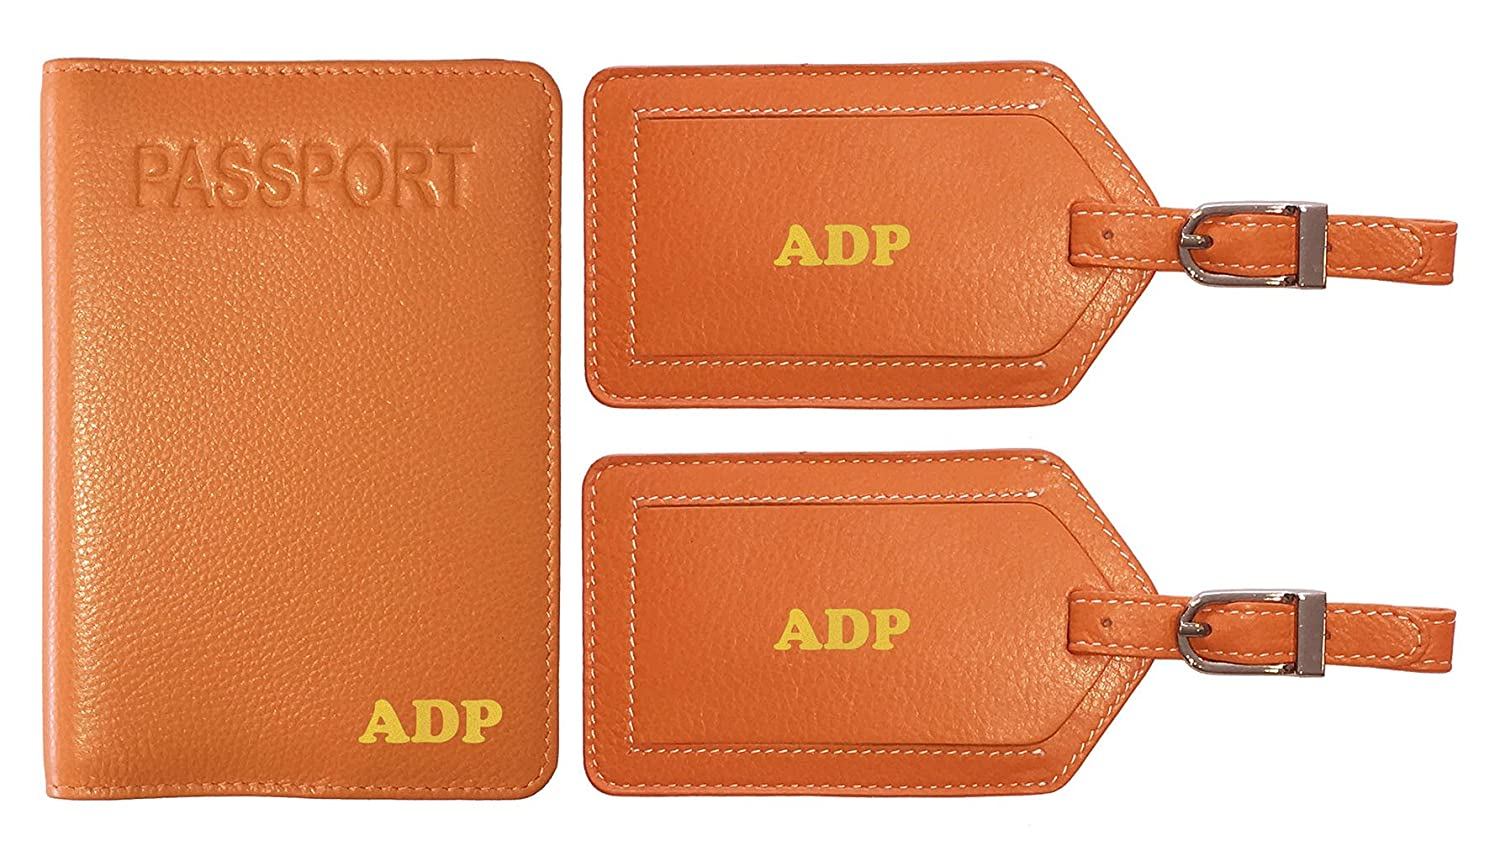 79396b8bad3a Personalized Monogrammed Bright Orange Leather RFID Passport Cover Holder  and 2 Luggage Tags